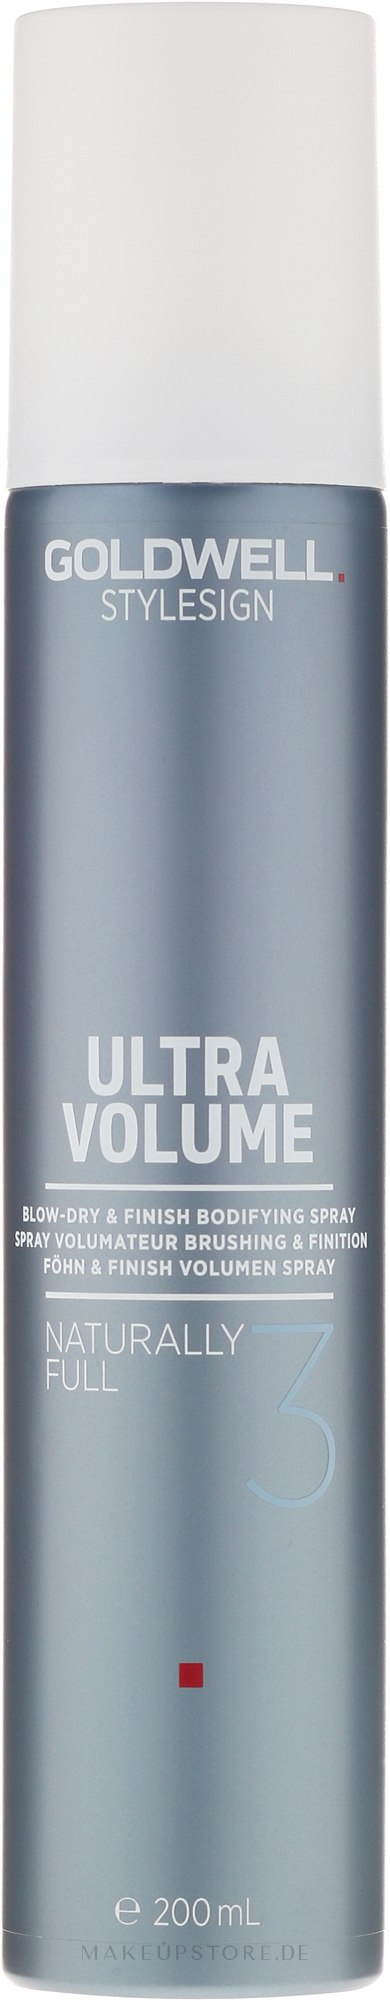 Föhn und Finish Volumen Spray - Goldwell Style Sign Ultra Volume Naturally Full — Bild 200 ml